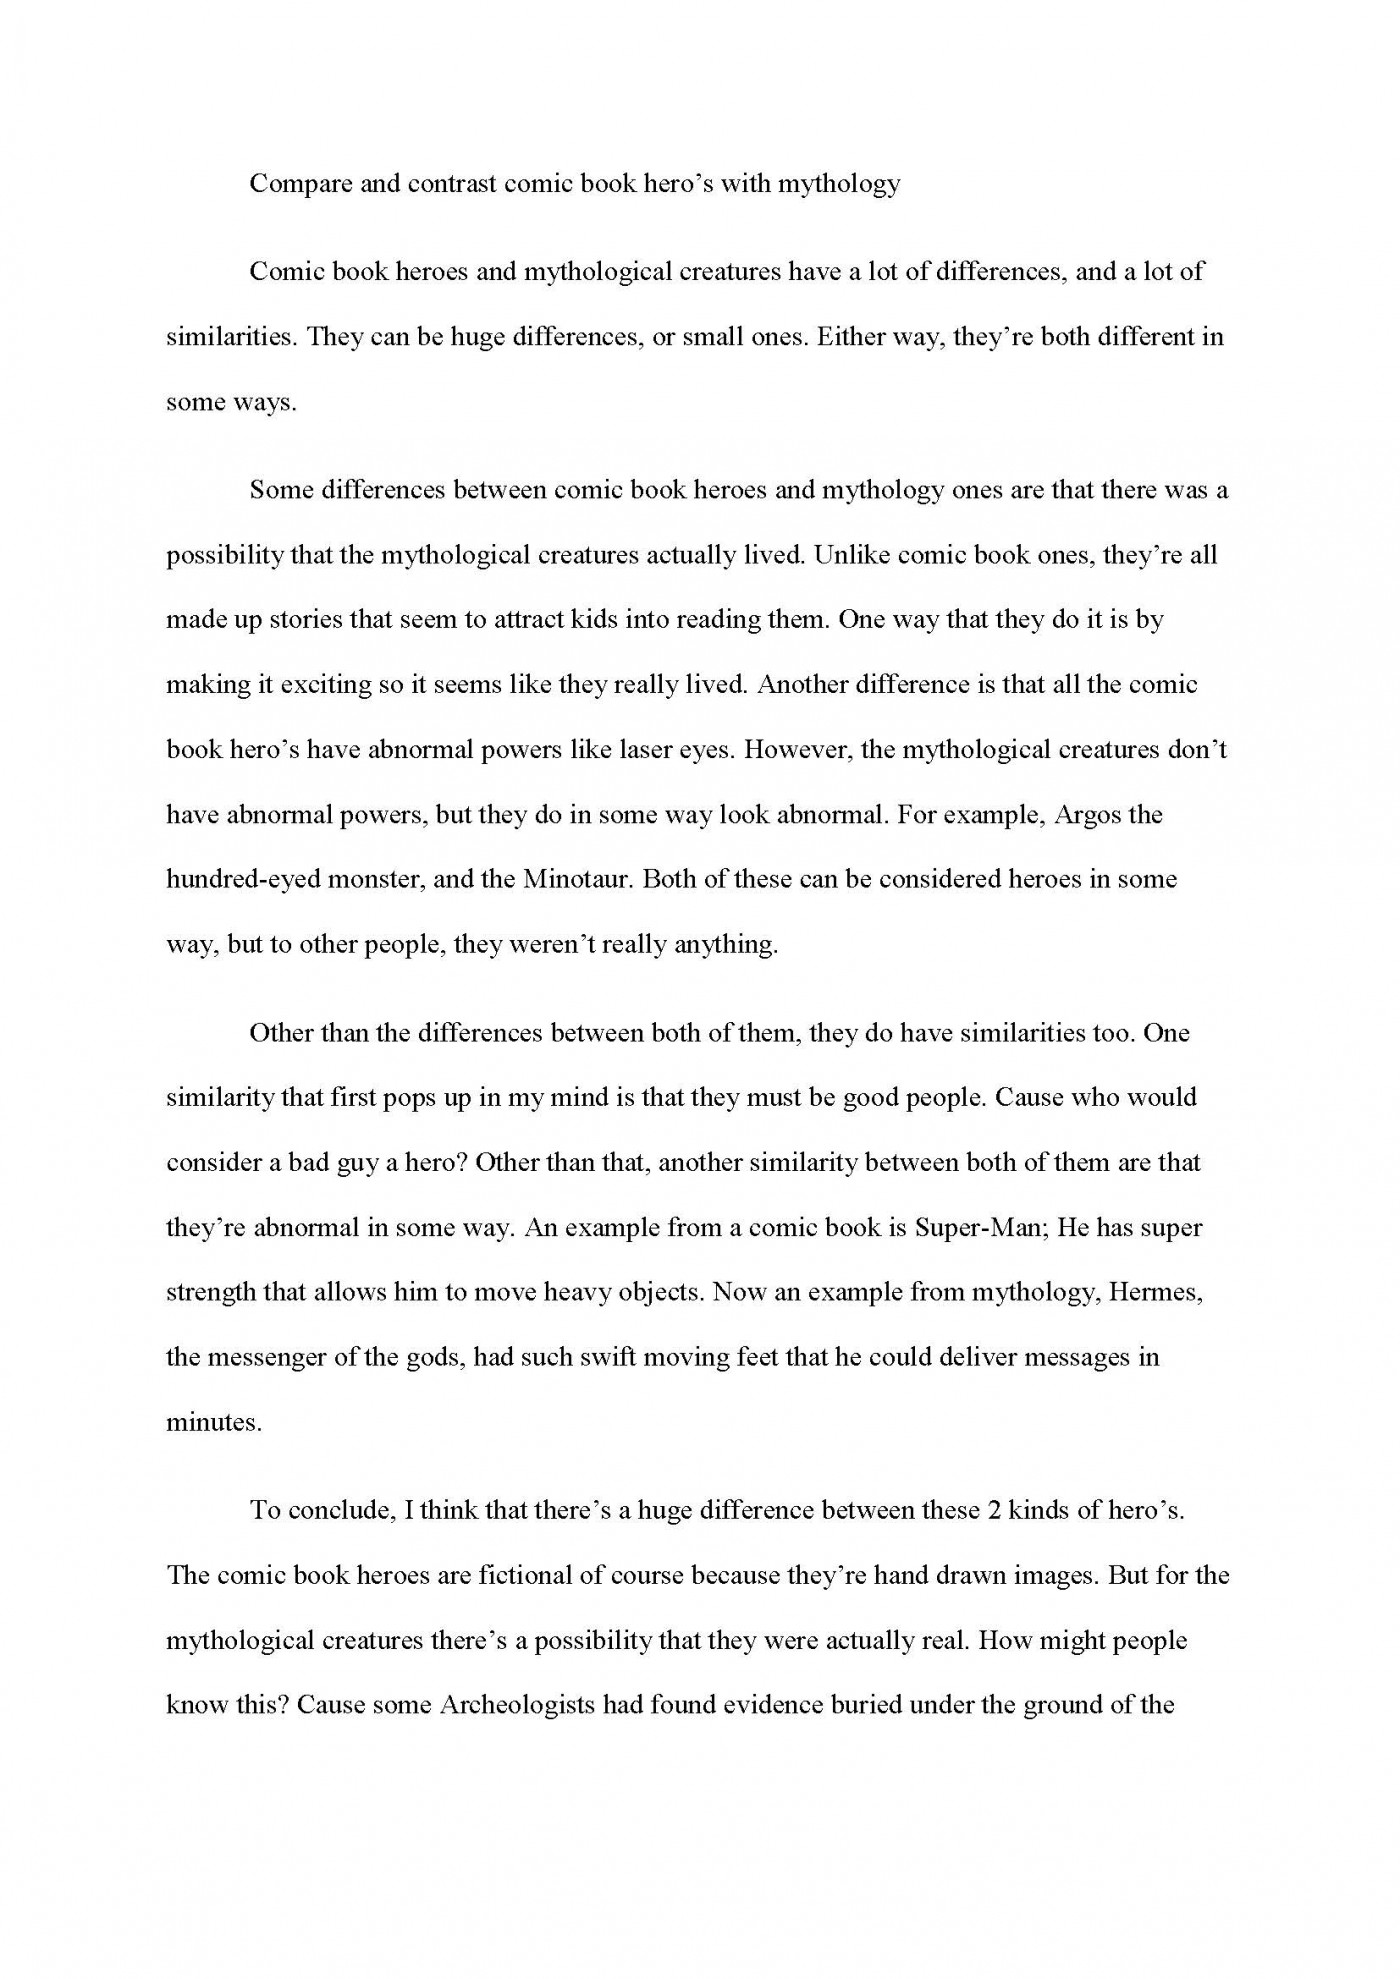 005 Compare And Contrast Essay Sampleid8072 Example Exceptional Template High School 5th Grade Vs College 1400